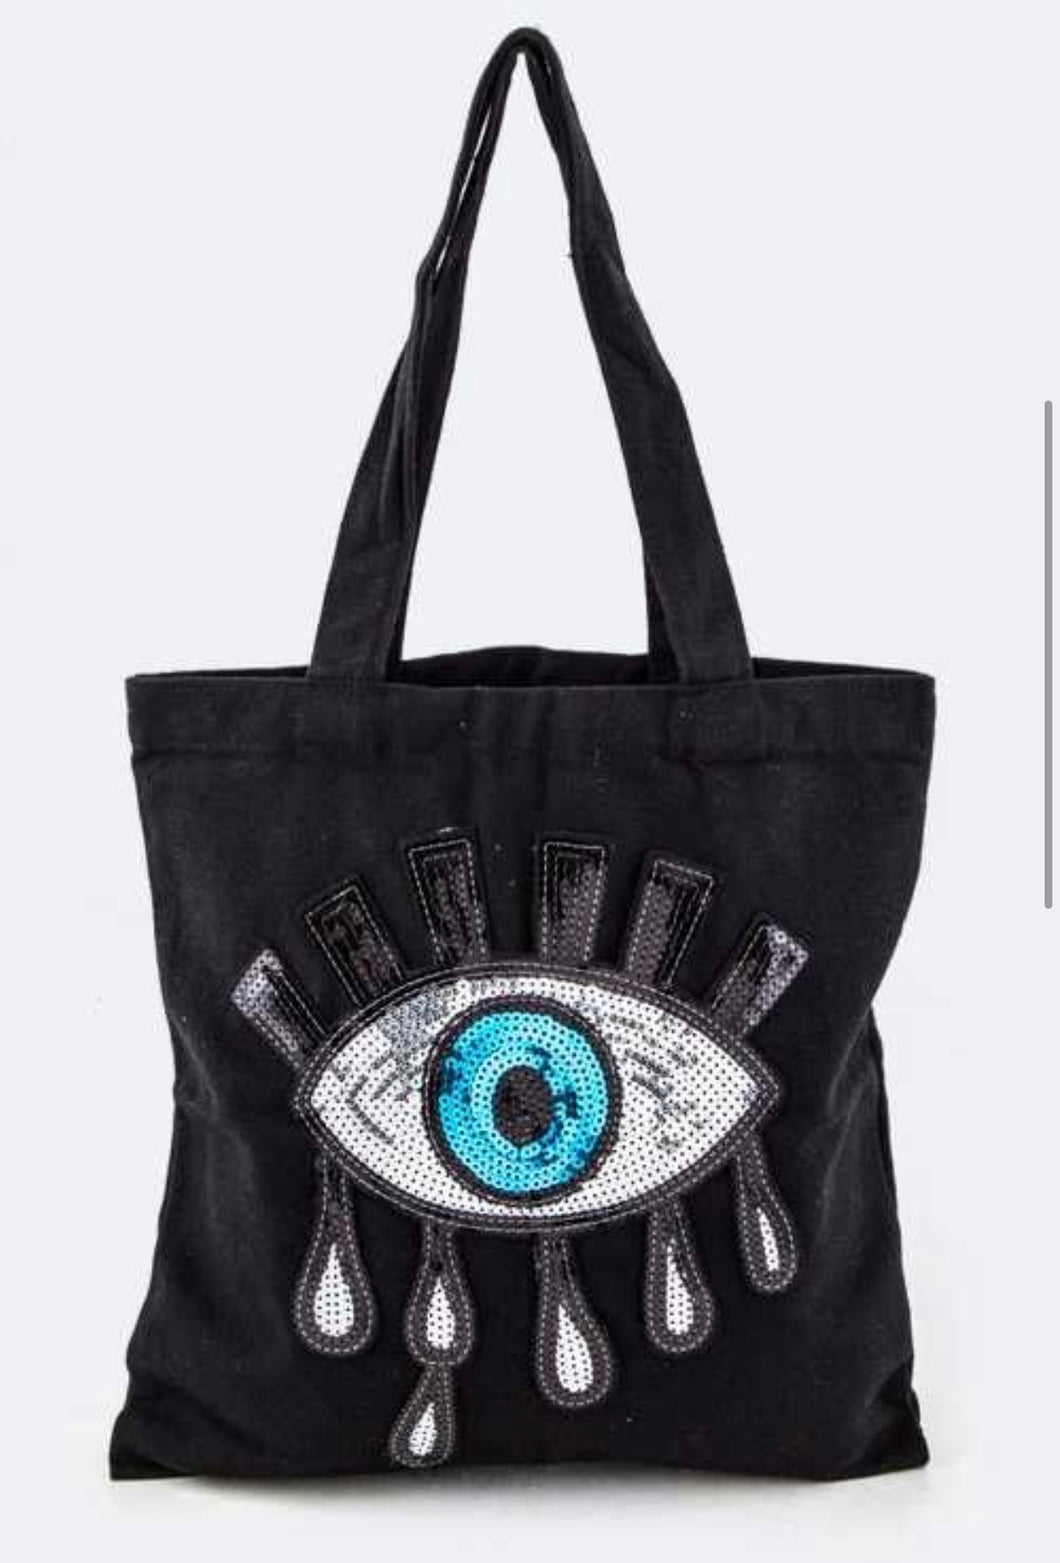 Evil eye canvas totes